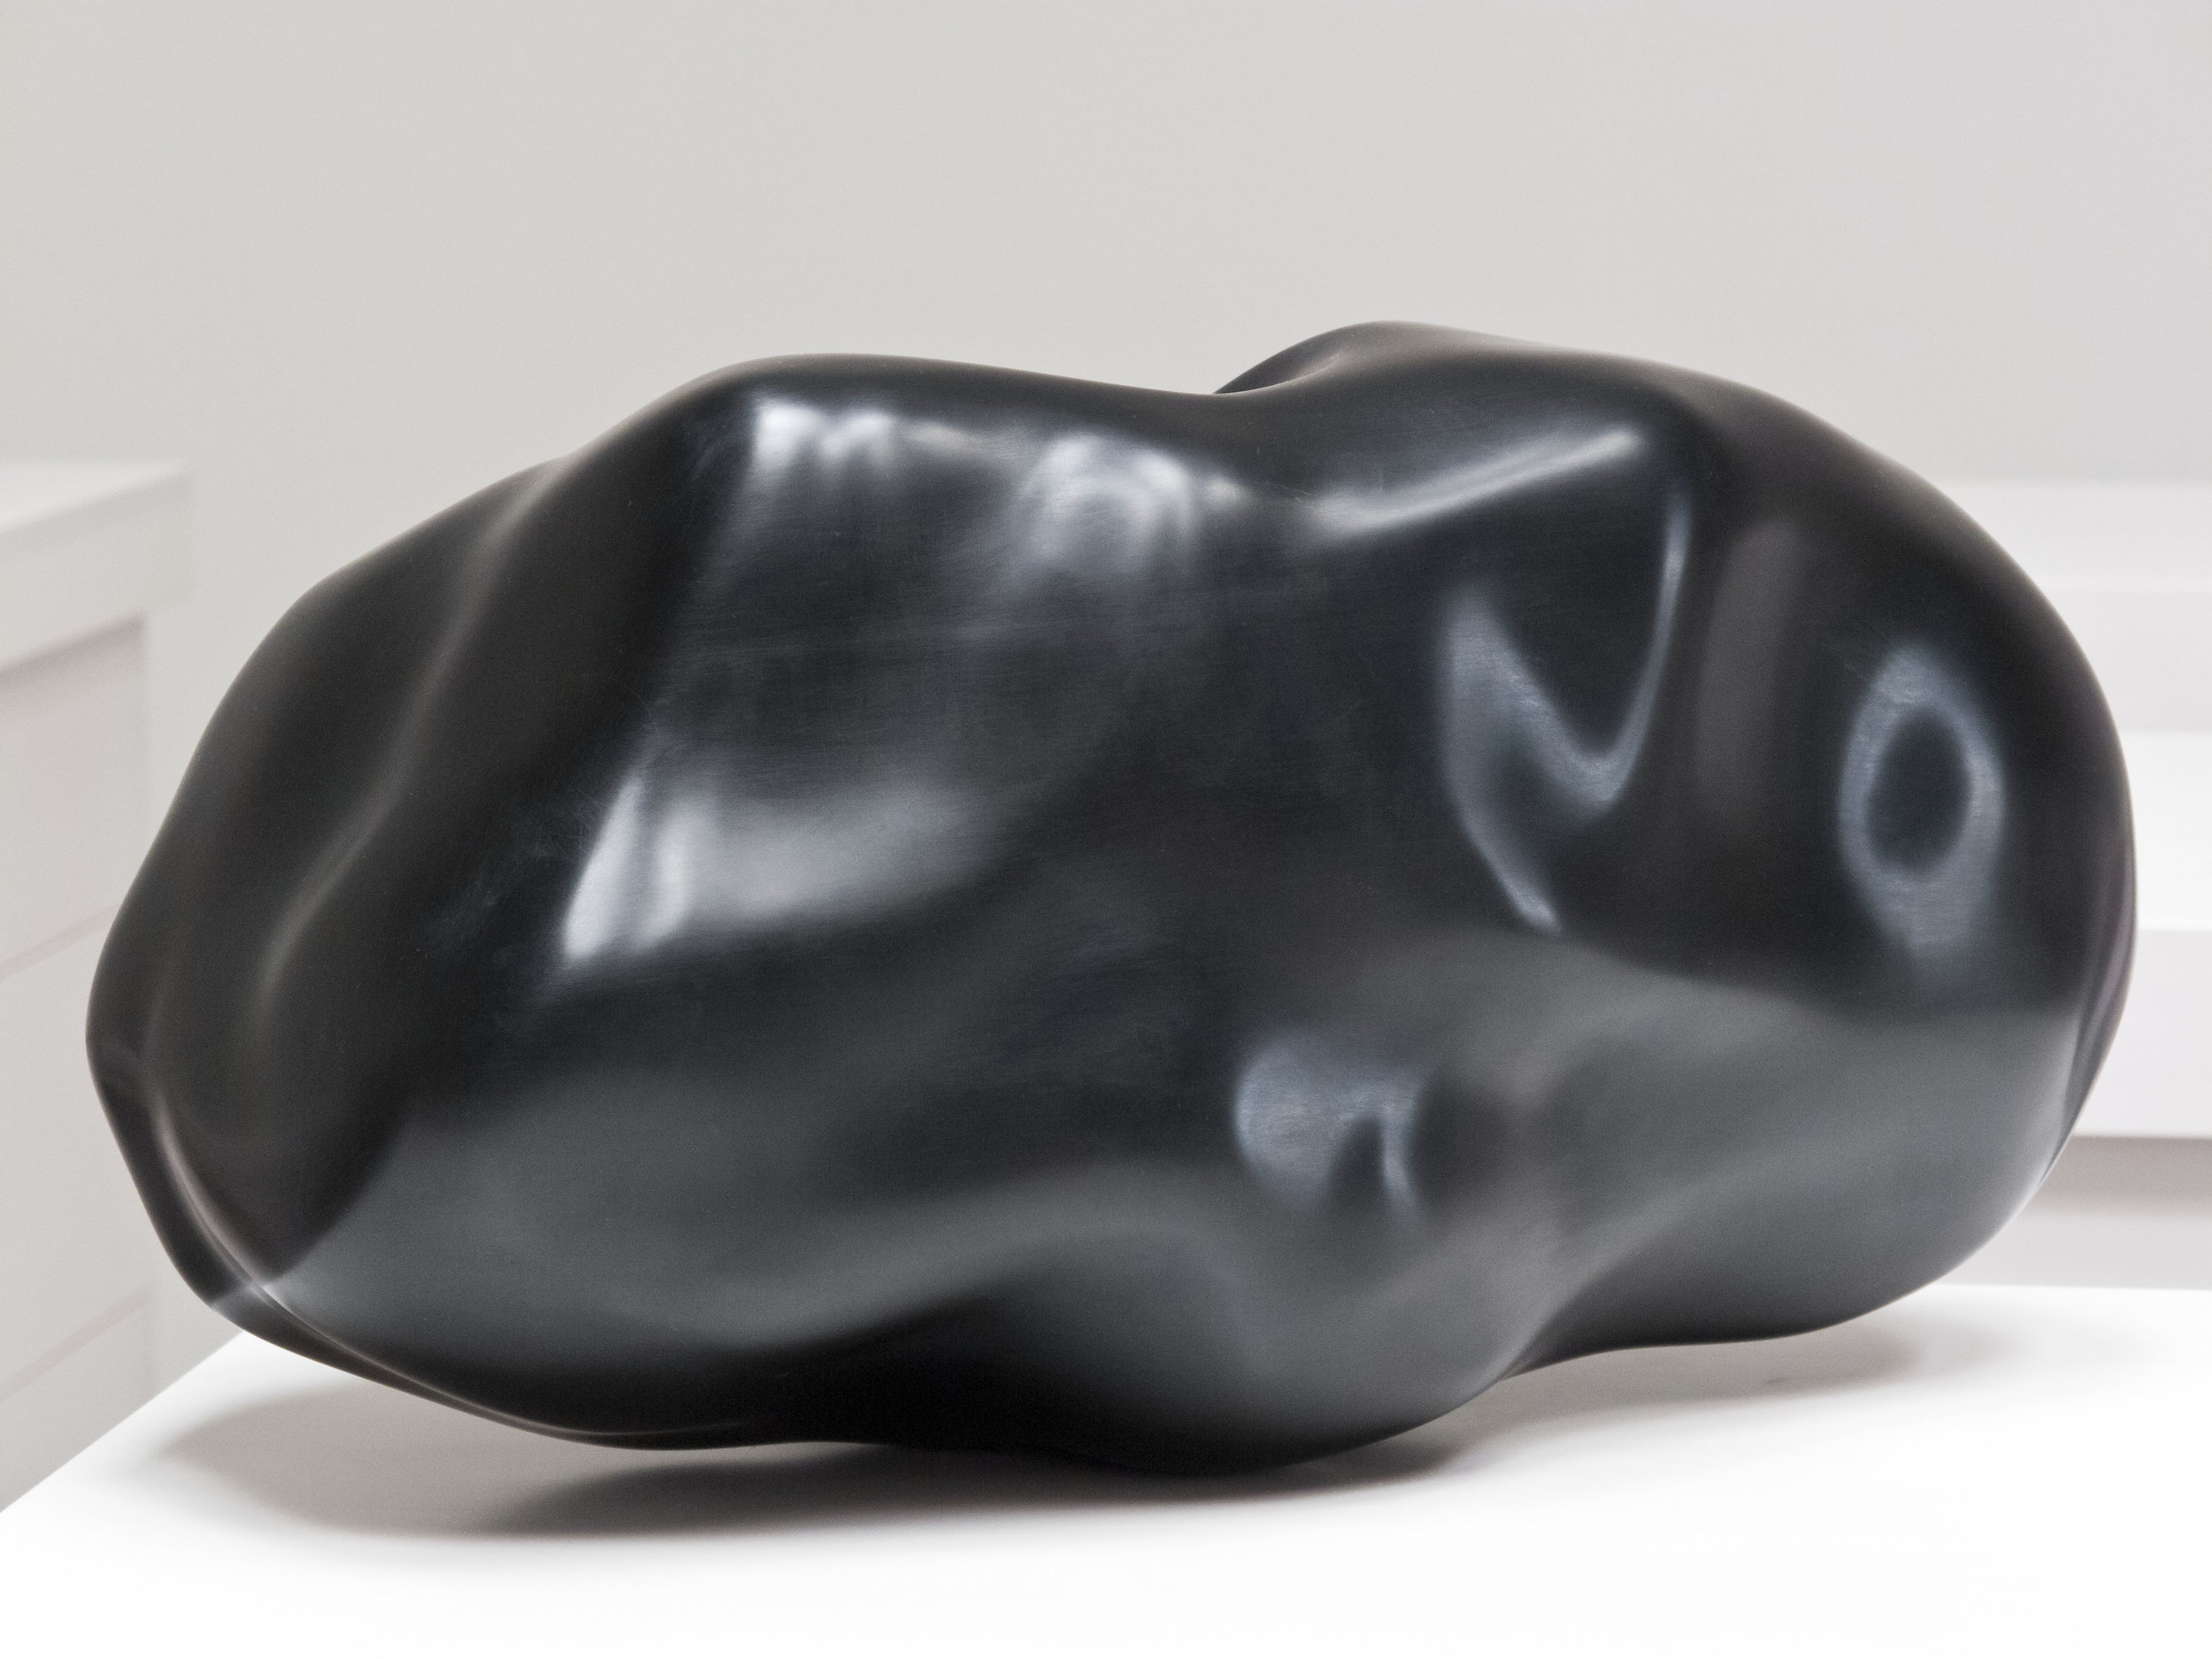 Asteroid (Apophis) , 2012 anodized aluminum 8 x 8 x 16 inches 20.31 x 20.31 x 40.63 cm Edition of 3, with 1 AP